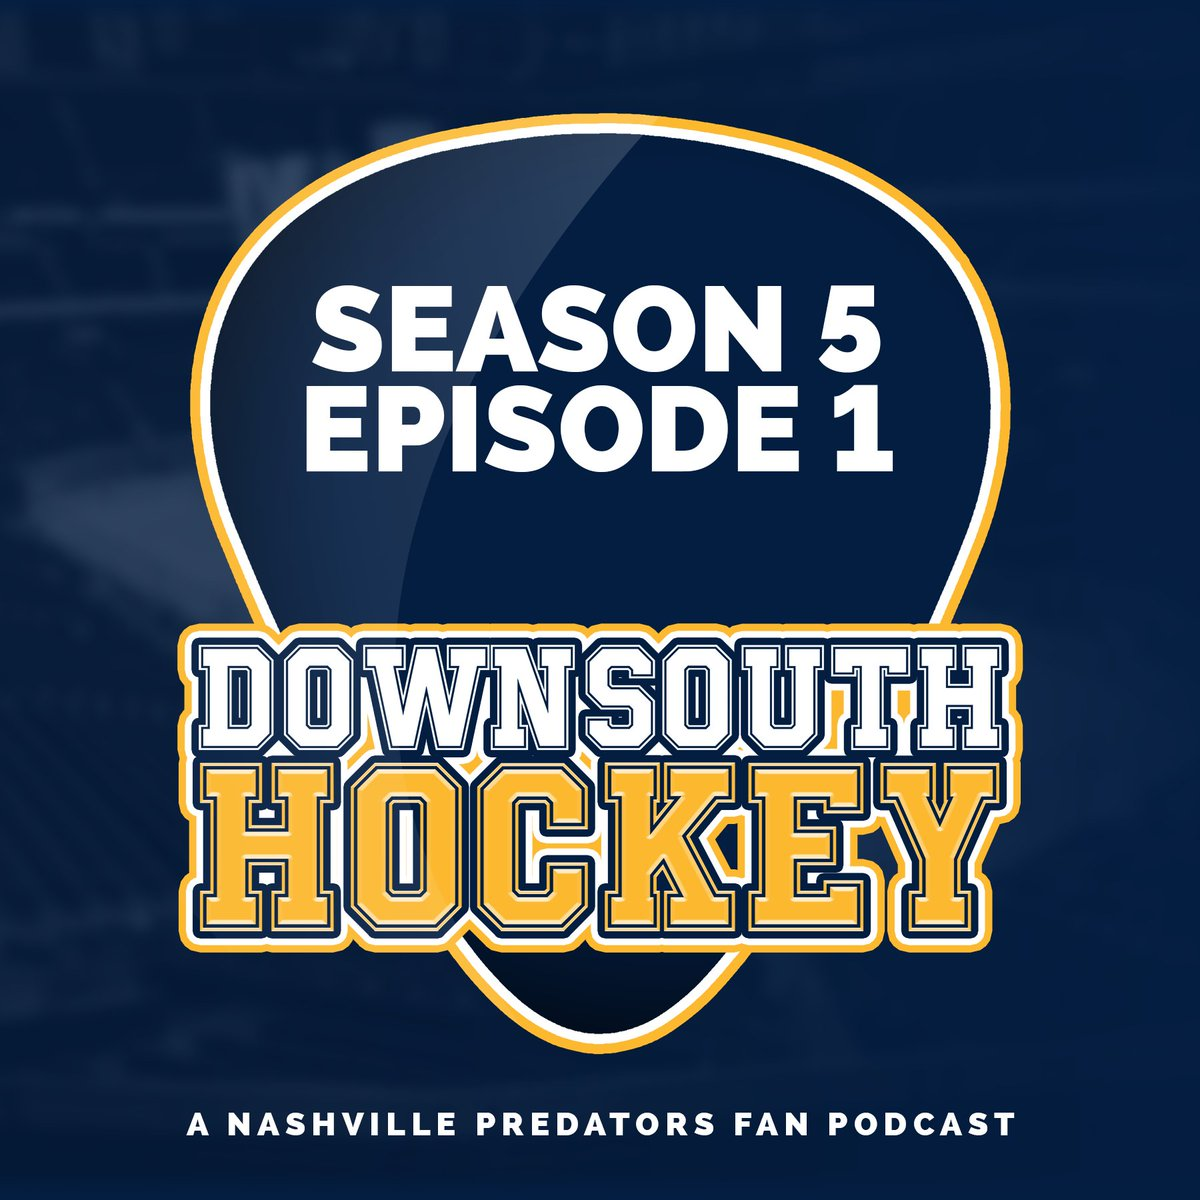 NEW LOGO ALERT! Also, Central Division standings, game reactions, Our expectations for the team, then prepare for another week of Preds hockey!  . #Preds  #Nashville #Smashville #Hockey #HockeyPodcast #Podcast #GooglePlay #ApplePodcast #PocketCasts #RSS